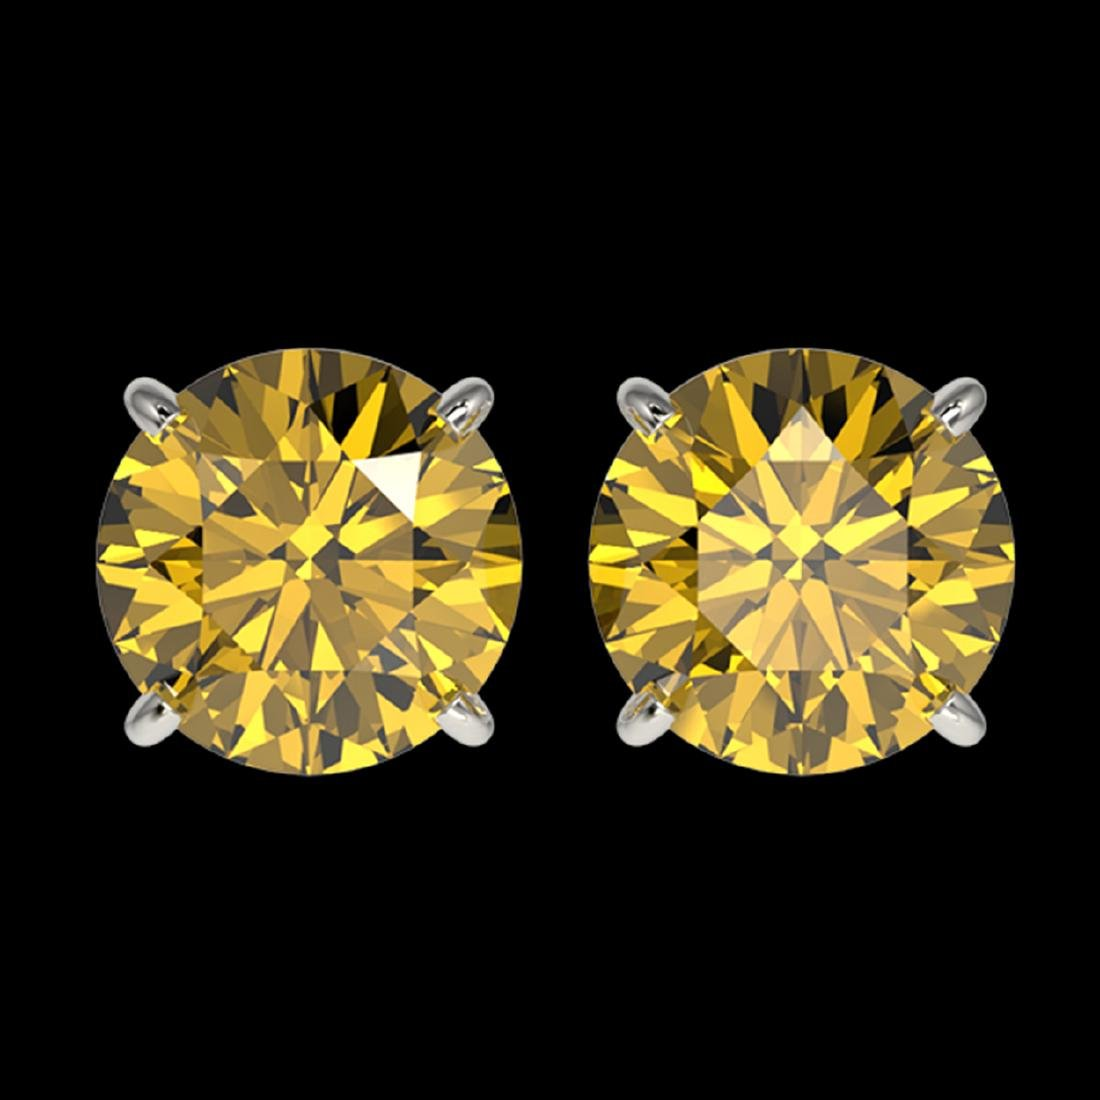 2.50 ctw Intense Yellow Diamond Stud Earrings 10K White